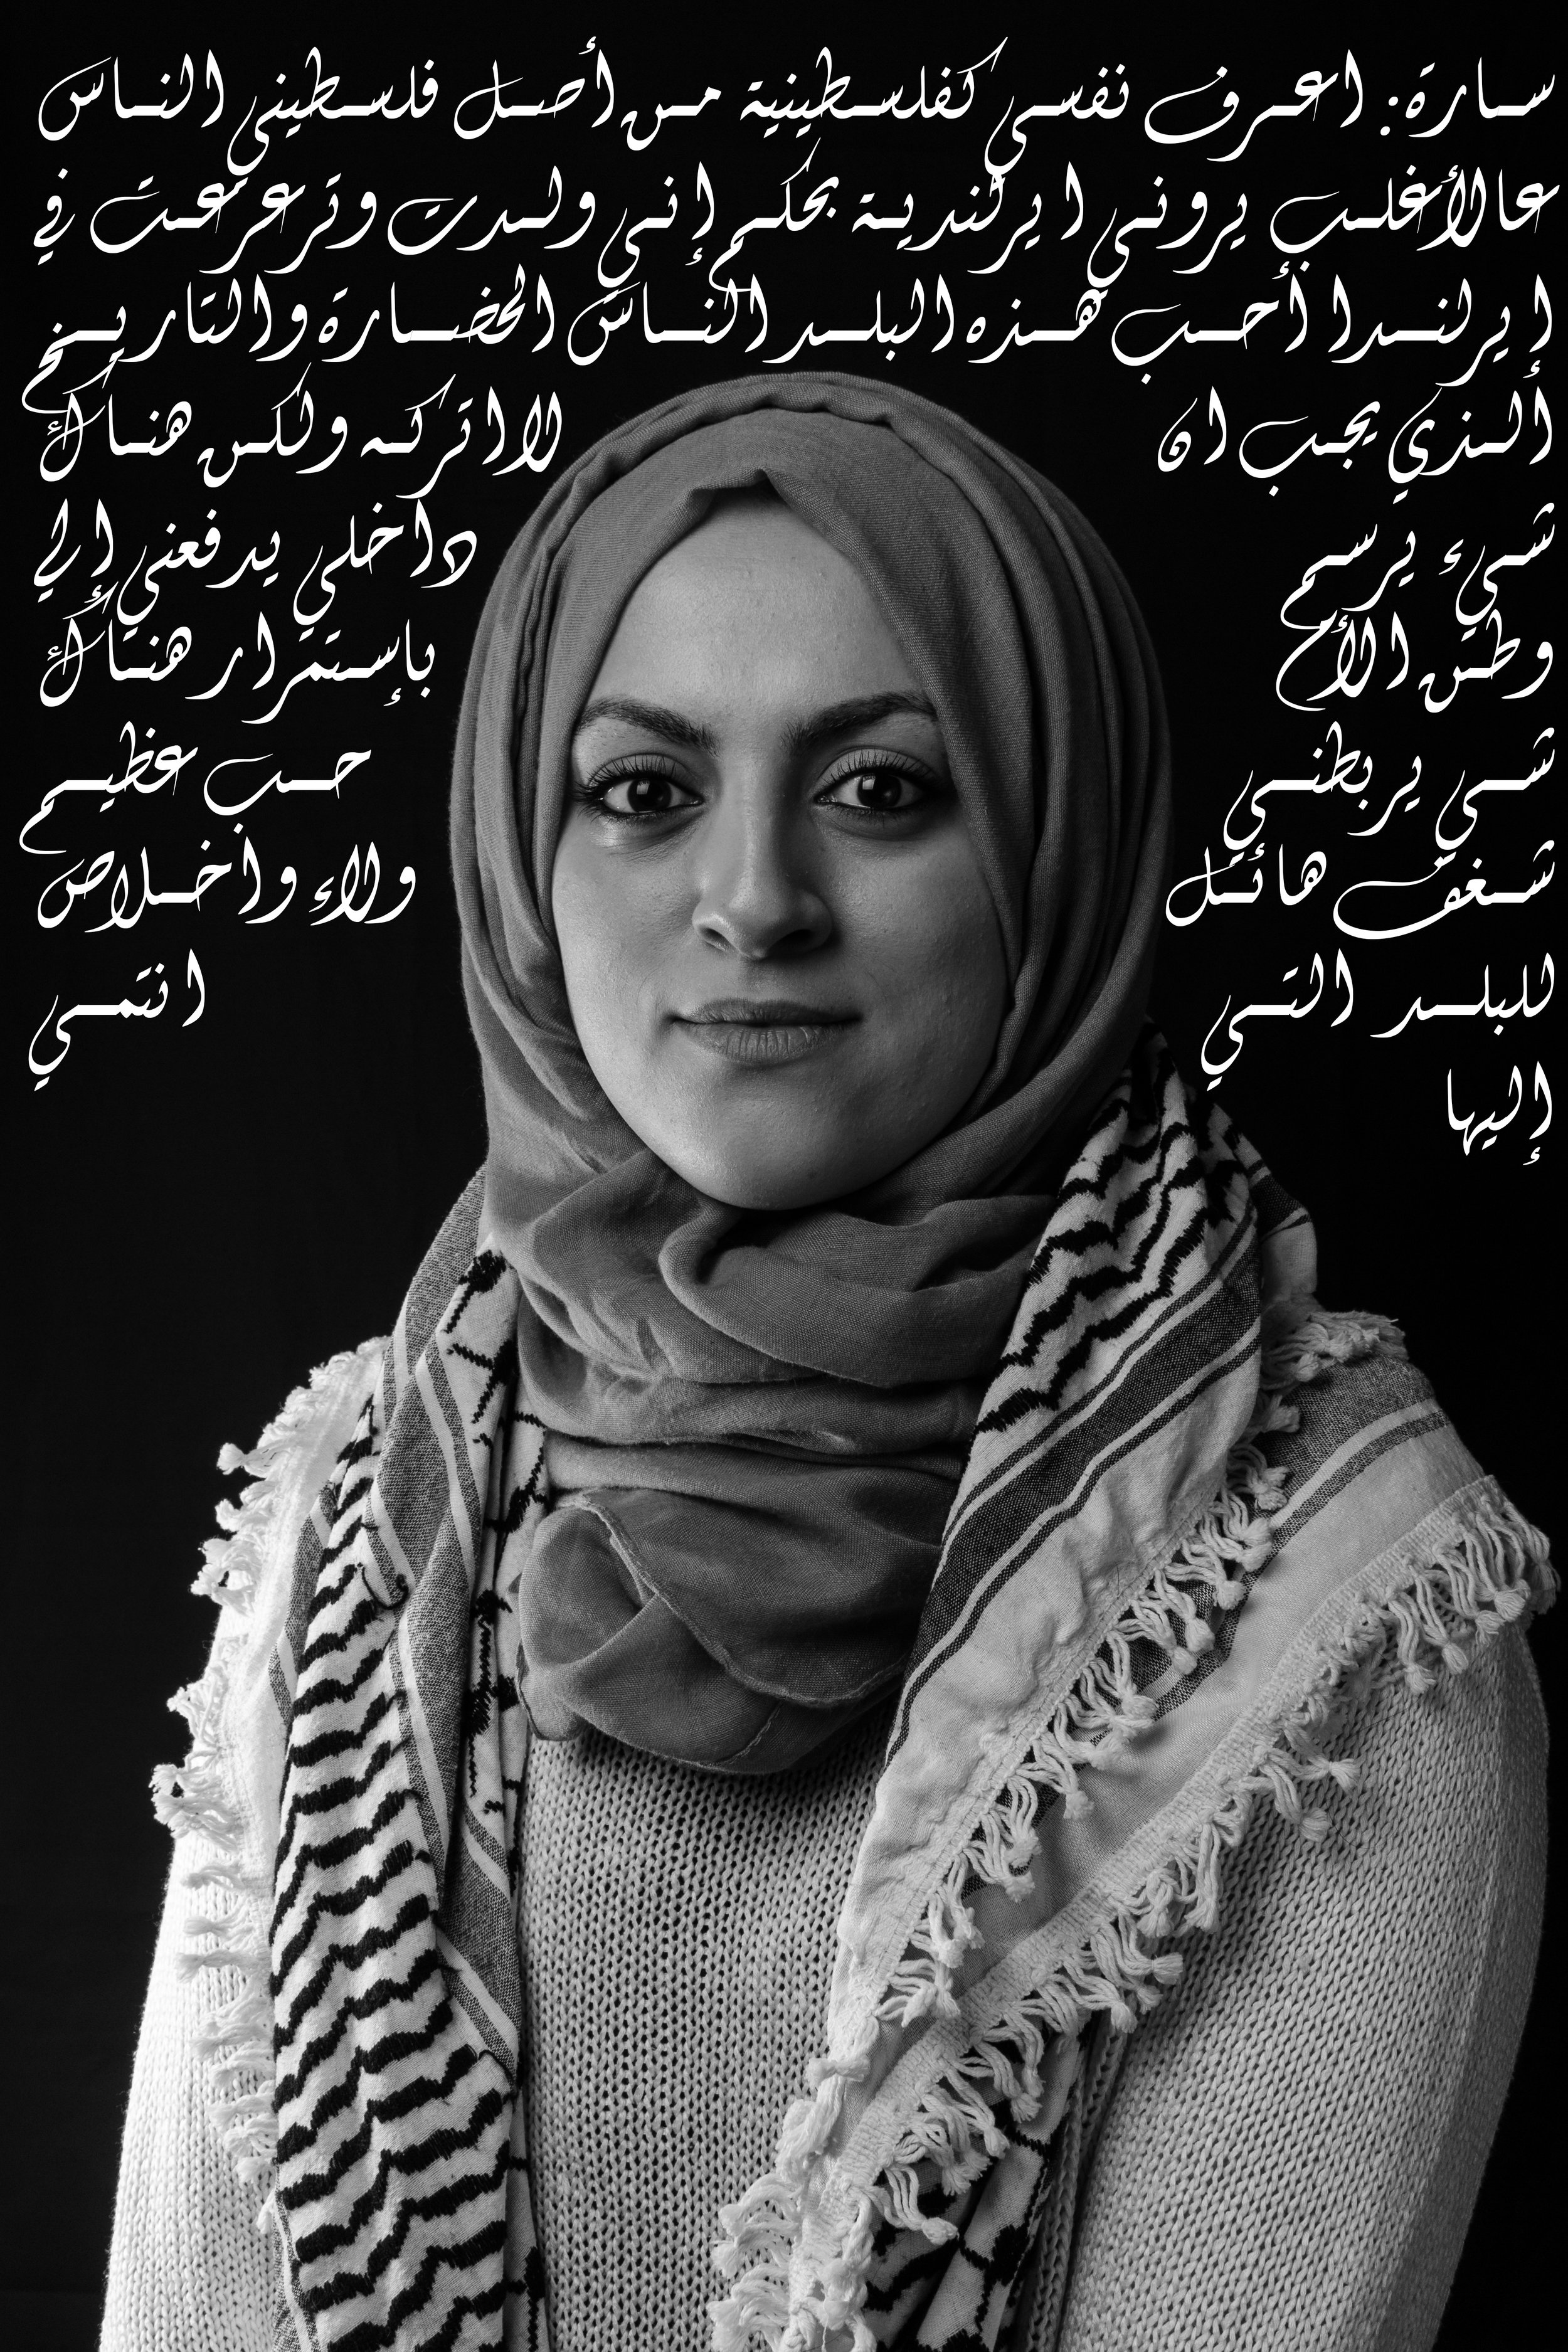 """""""I identify myself as a Palestinian, by descent I am one. I would be considered Irish by many as I was born and raised in Ireland. I love this country, the people, the culture, the history and should I ever leave it, I know I will truly miss it. But something within me is constantly drawn towards the motherland. Although I have not yet gotten the opportunity to visit my hometown (Palestine), I have this connection ... I feel something deep in my heart, great love, enormous passion, loyalty, for the land to which I belong, but its hard to describe it exactly, and to say why."""""""